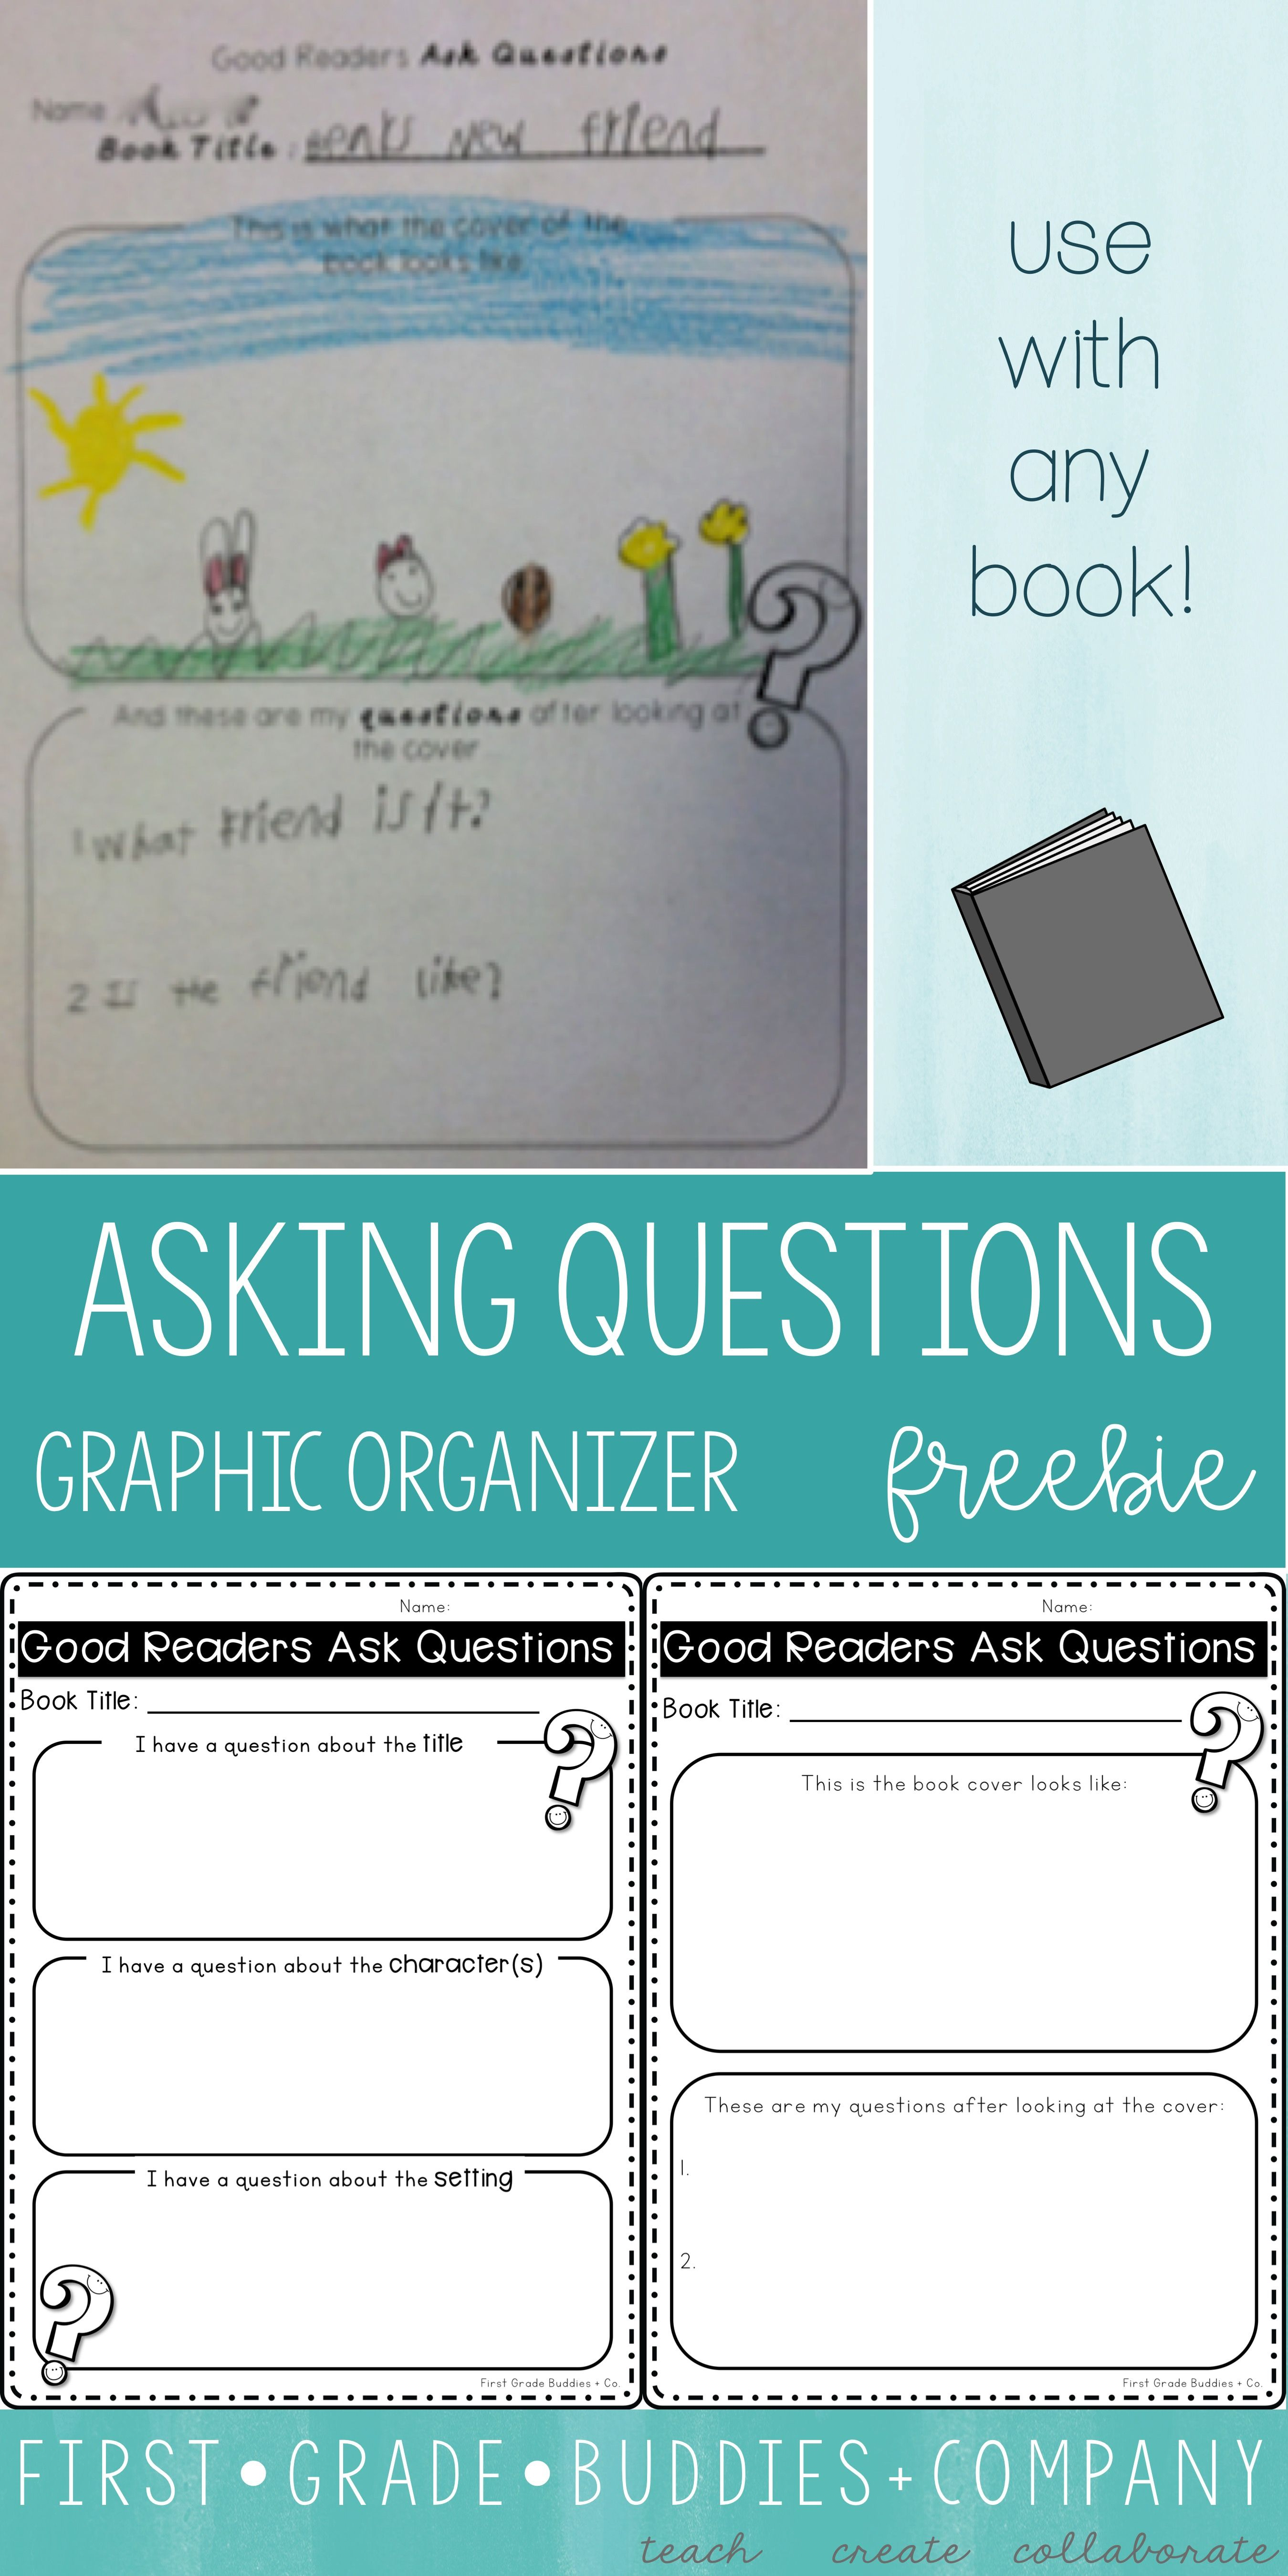 small resolution of First Grade Buddies: Graphic Organizers for ANY Book! We created one great  big F…   Upper elementary reading